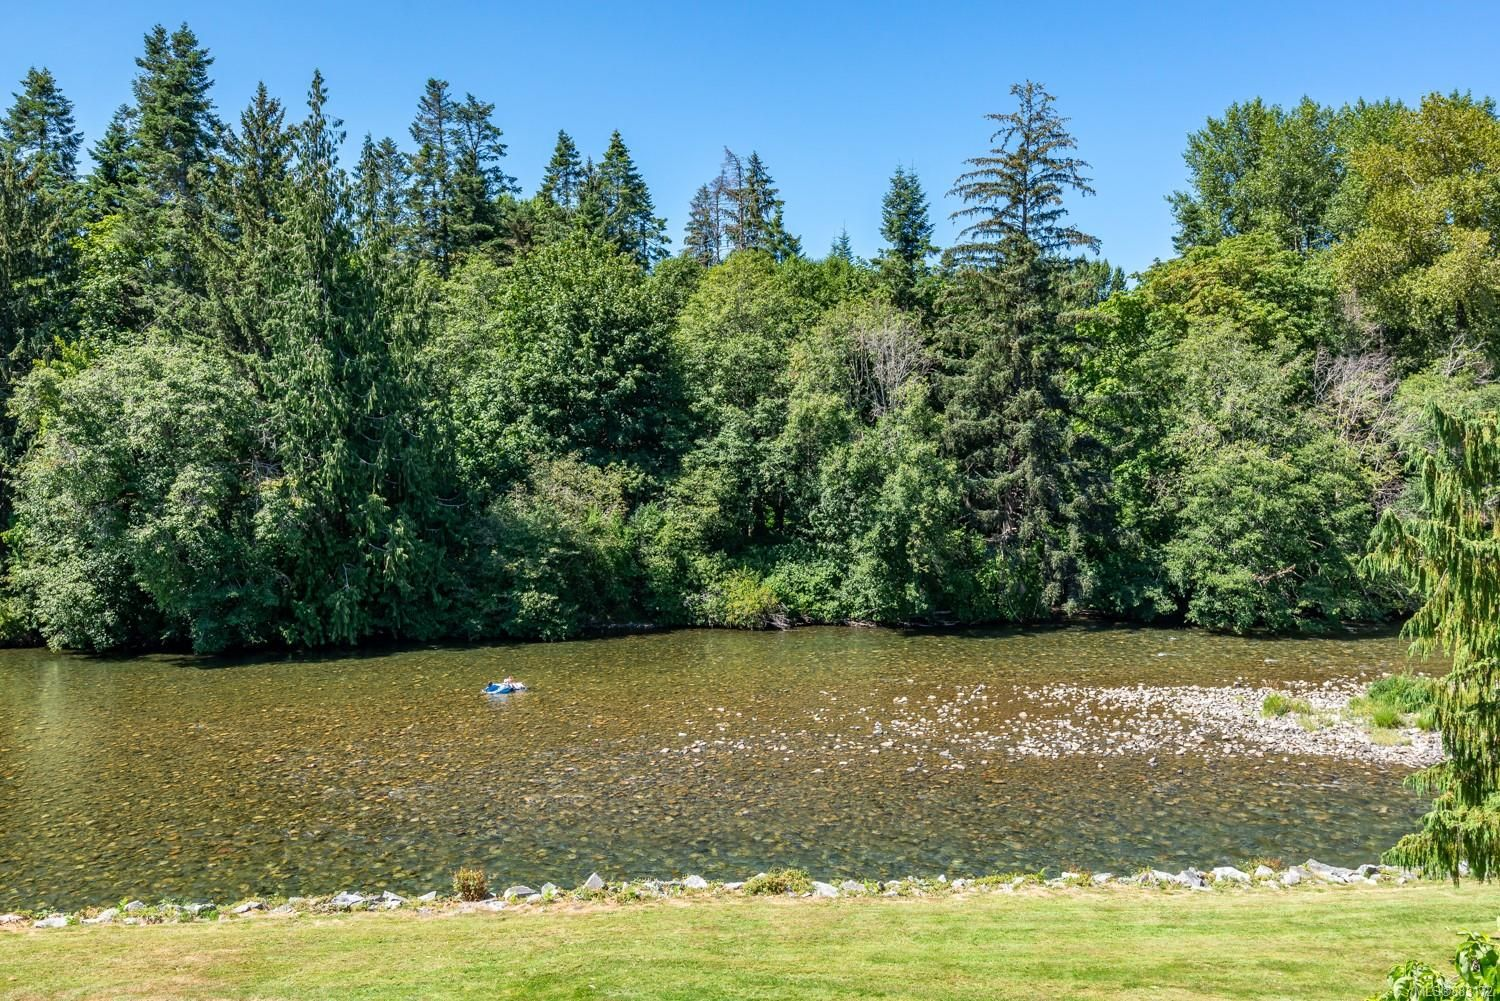 Photo 24: Photos: 303 205 1st St in : CV Courtenay City Row/Townhouse for sale (Comox Valley)  : MLS®# 883172